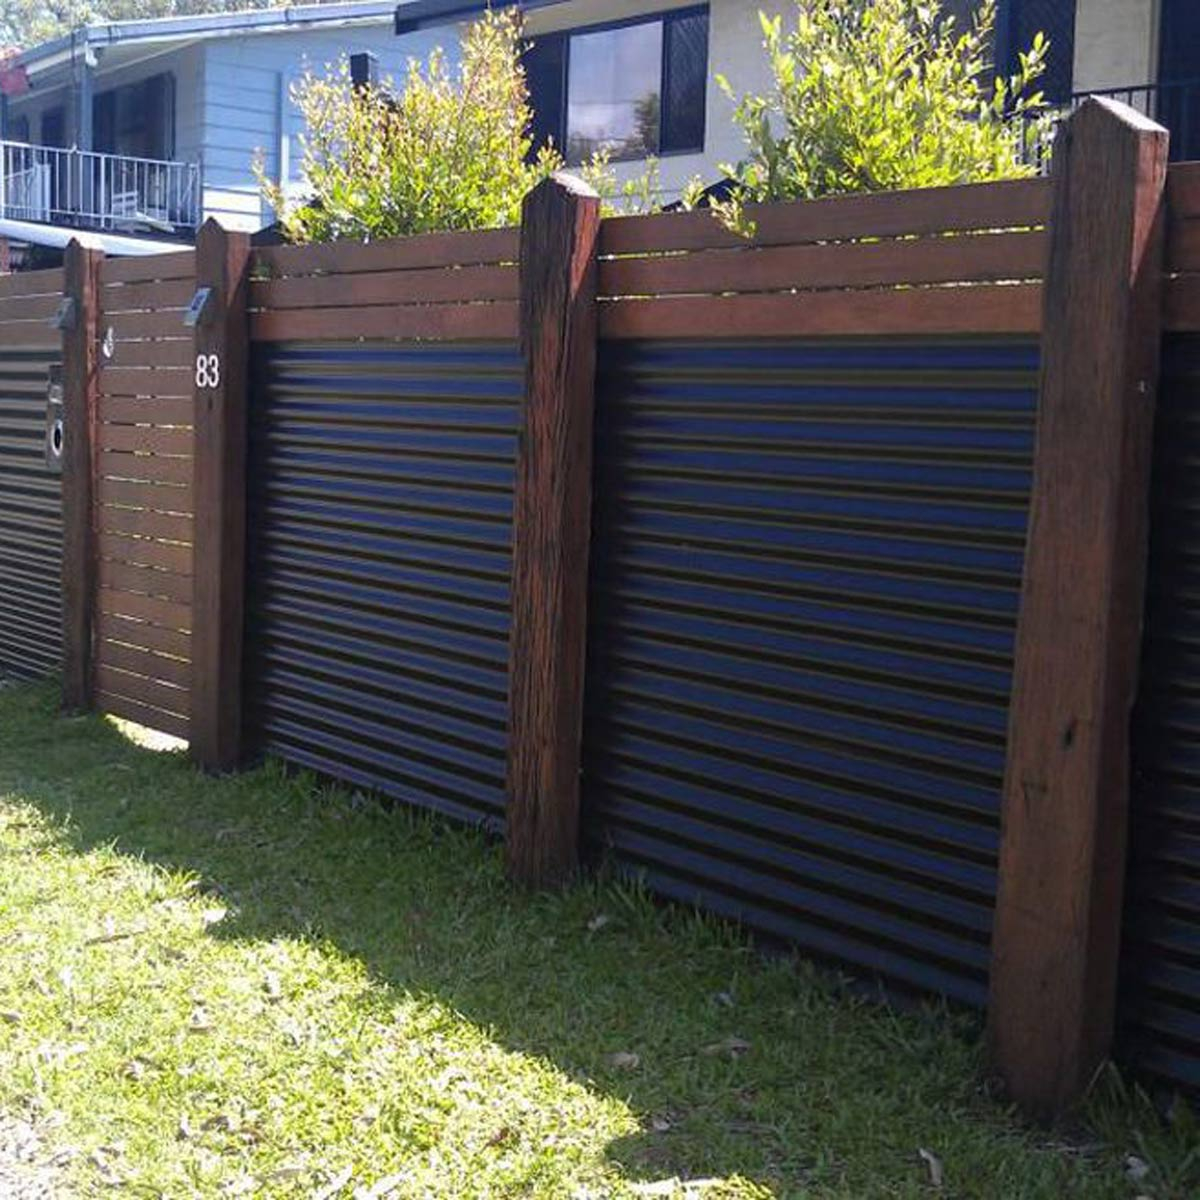 Yard Fencing 10 Modern Fence Ideas Family Handyman in 13 Awesome Concepts of How to Make Backyard Fencing Ideas